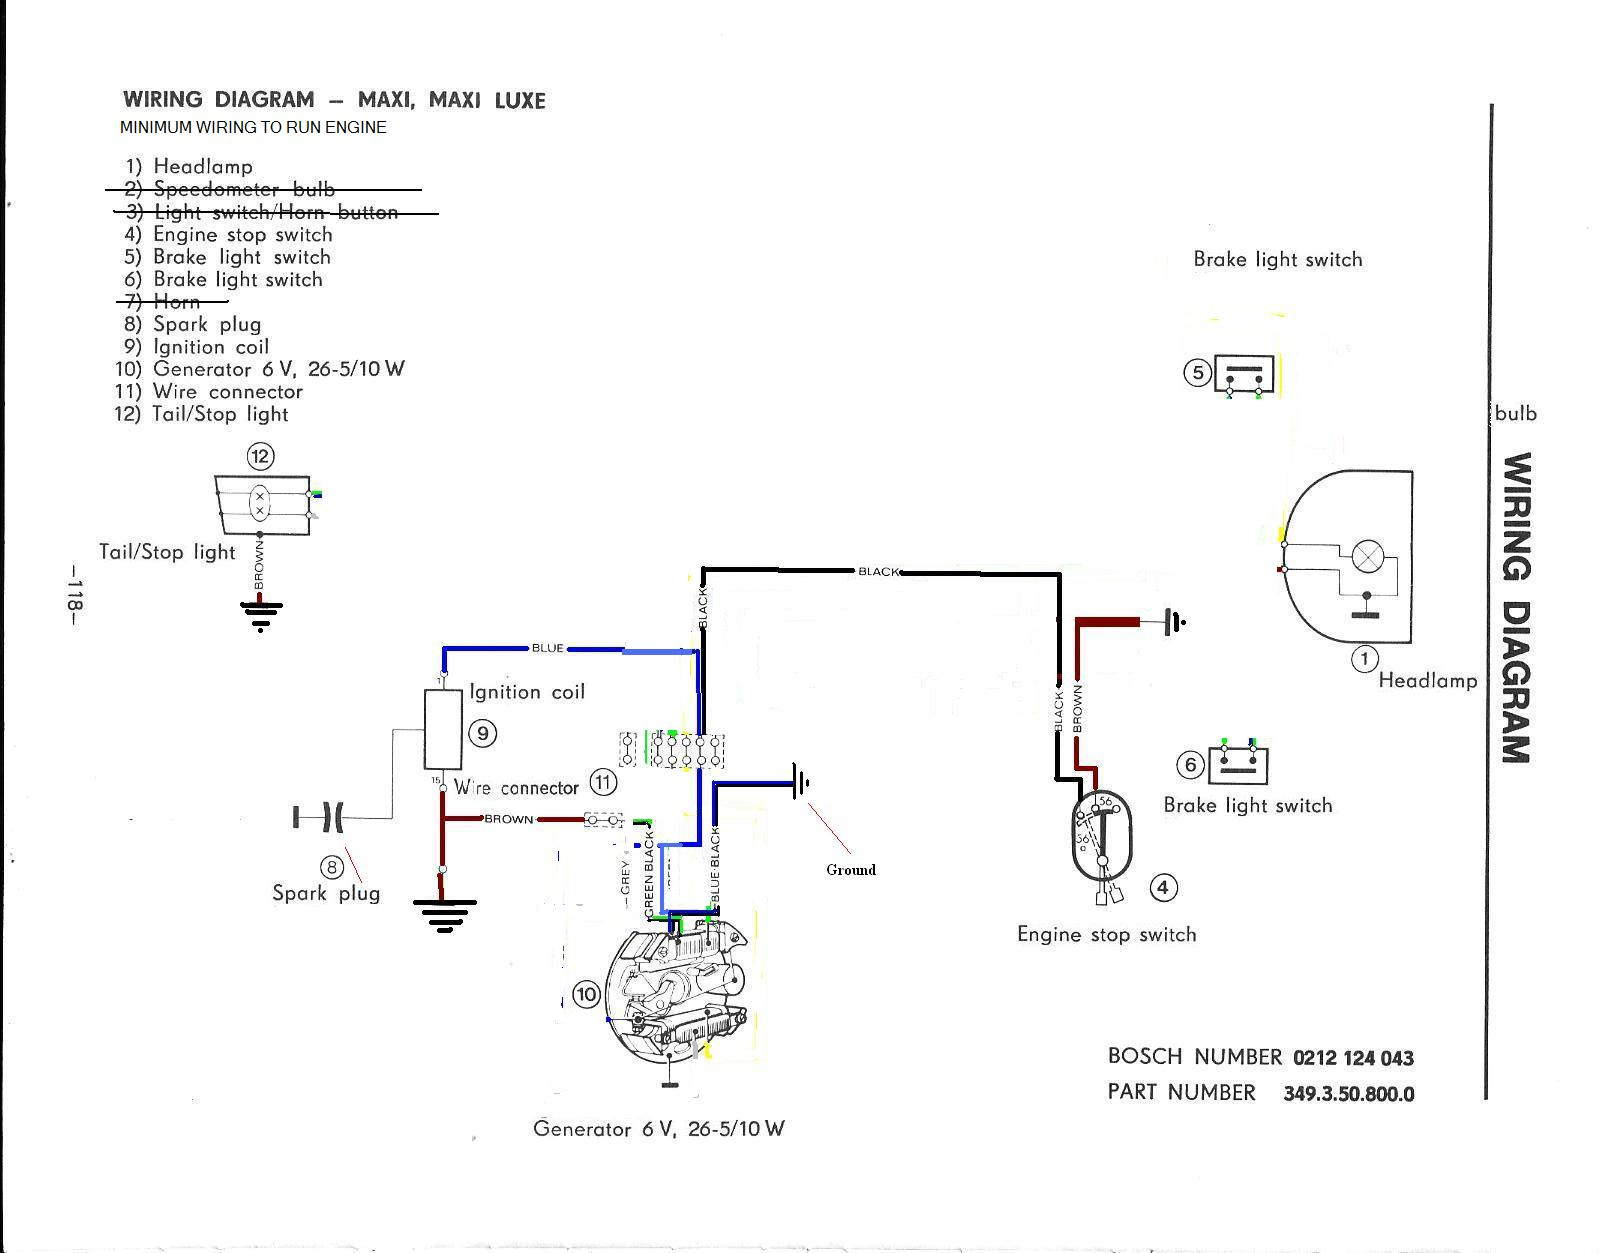 Fantastic Emanage Blue Wiring Diagram Picture Collection - Wiring ...